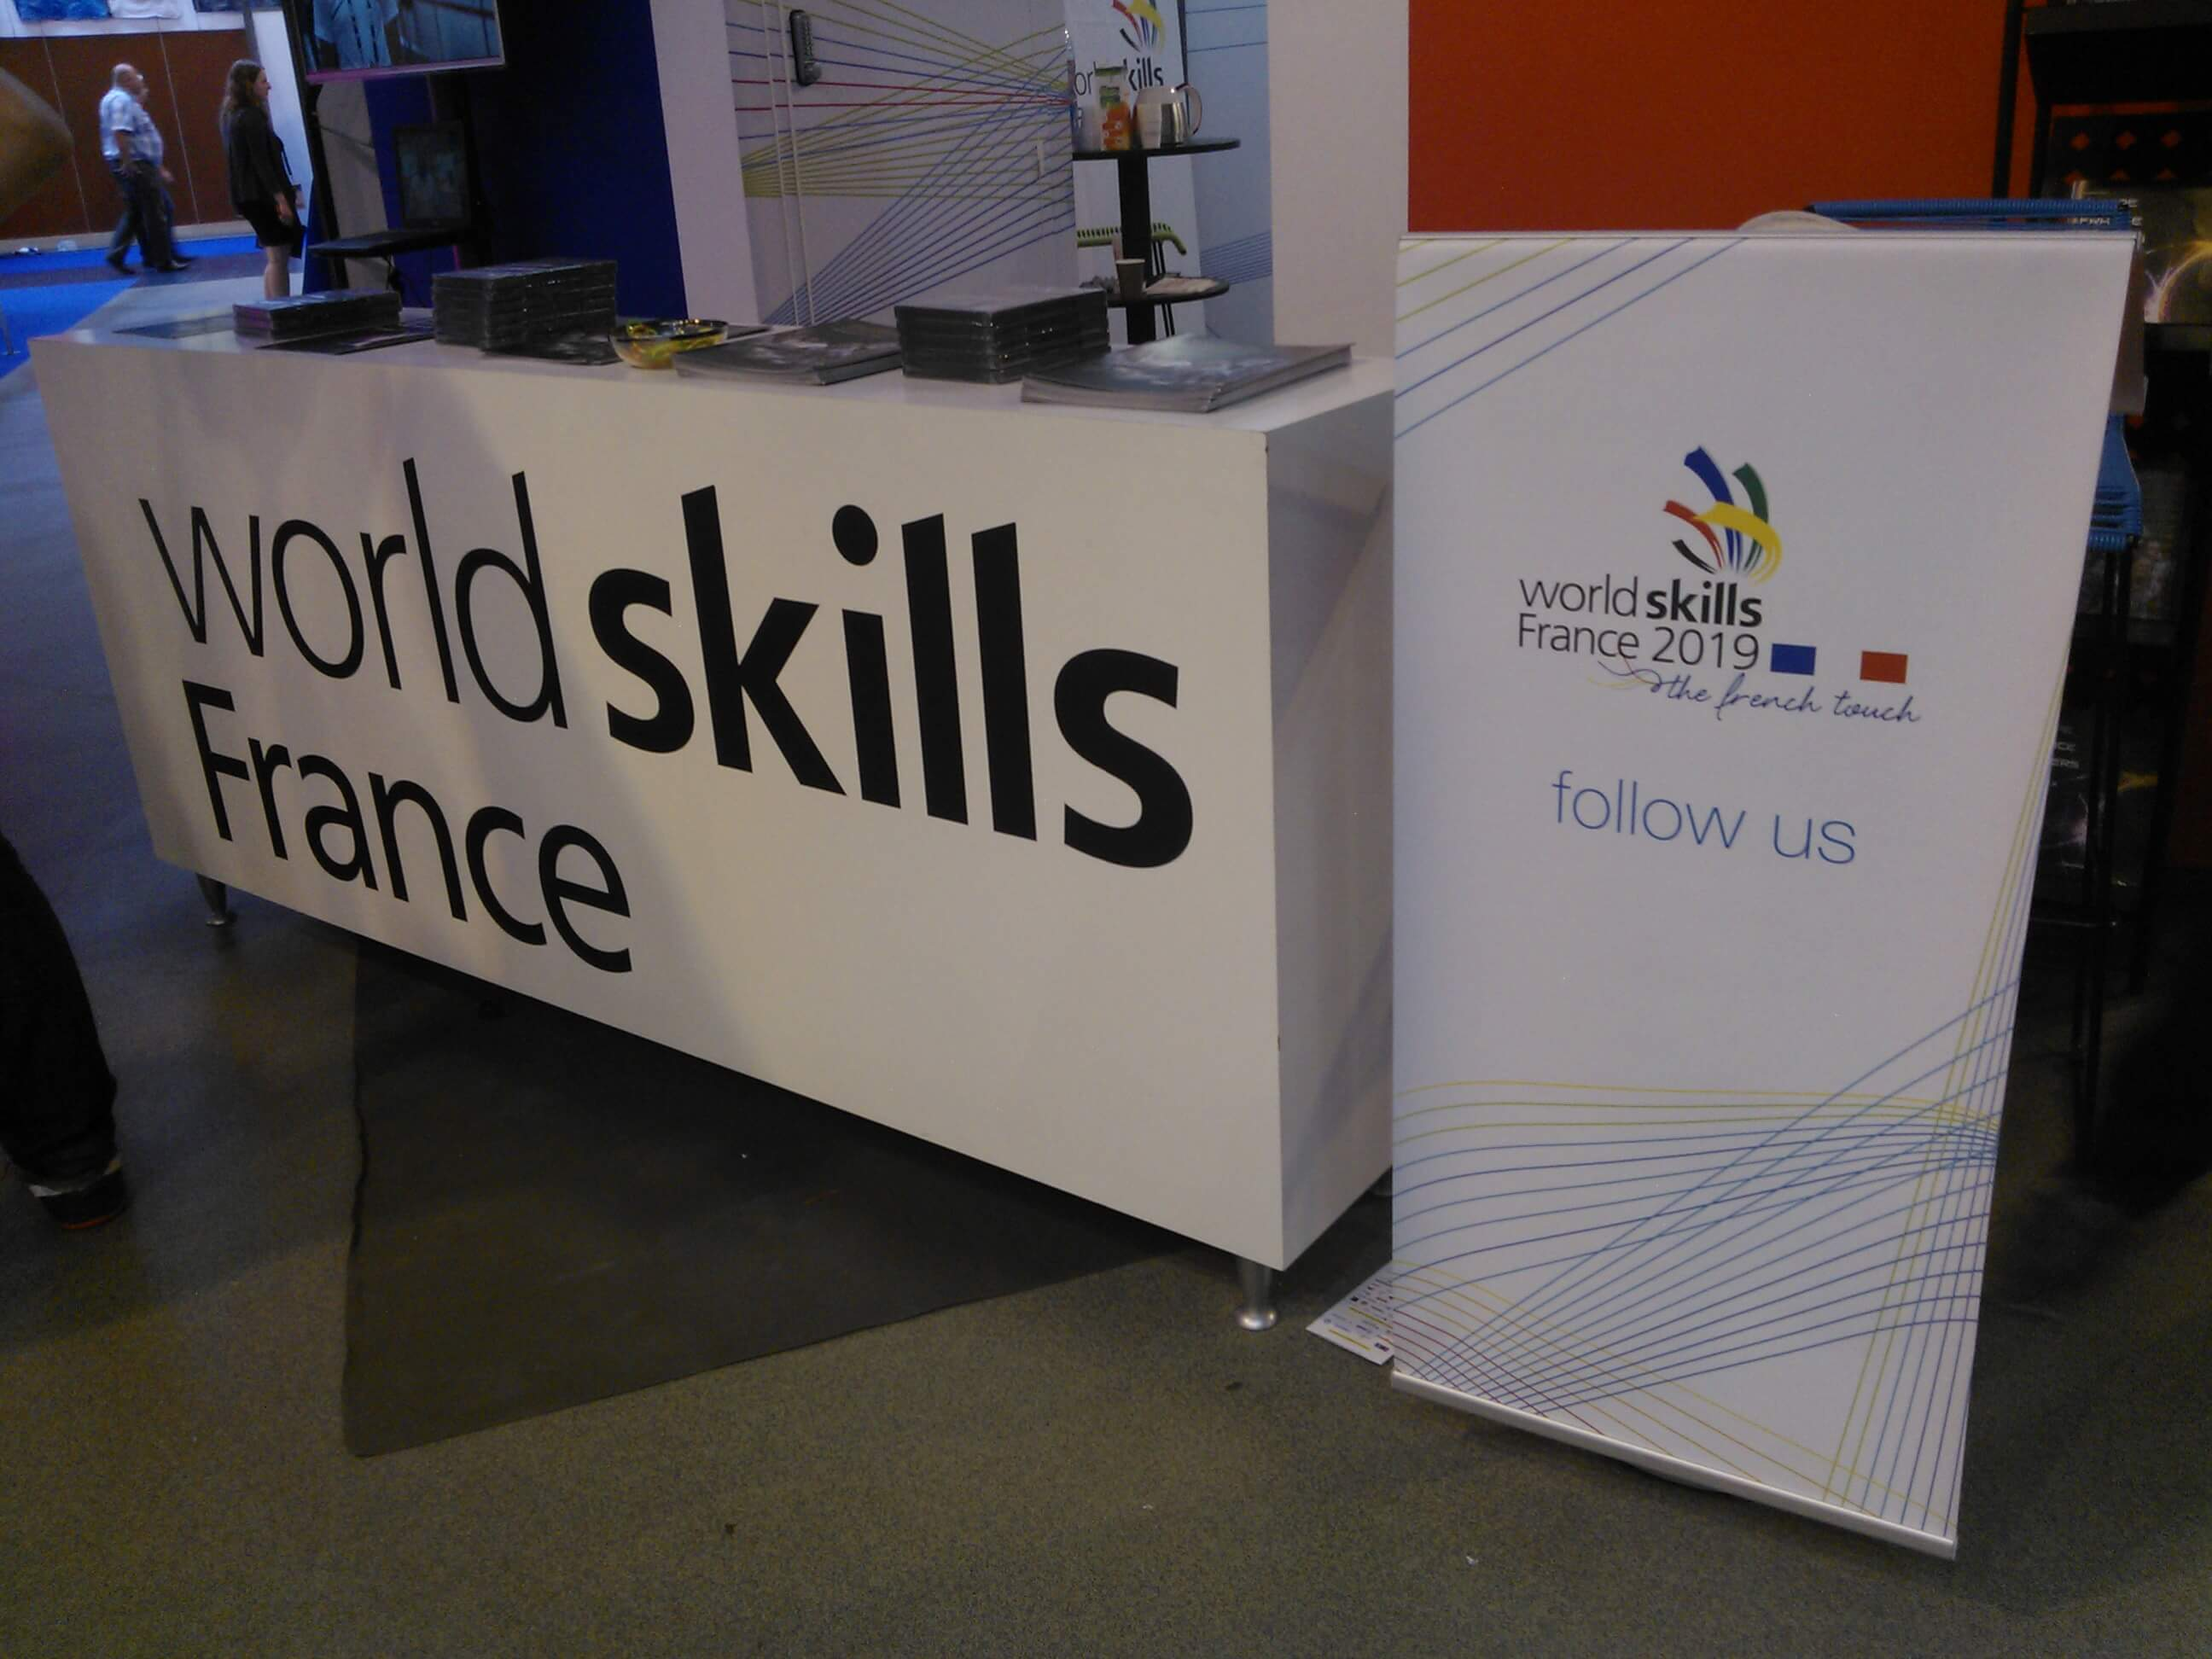 meubles Boqa salon worldskills